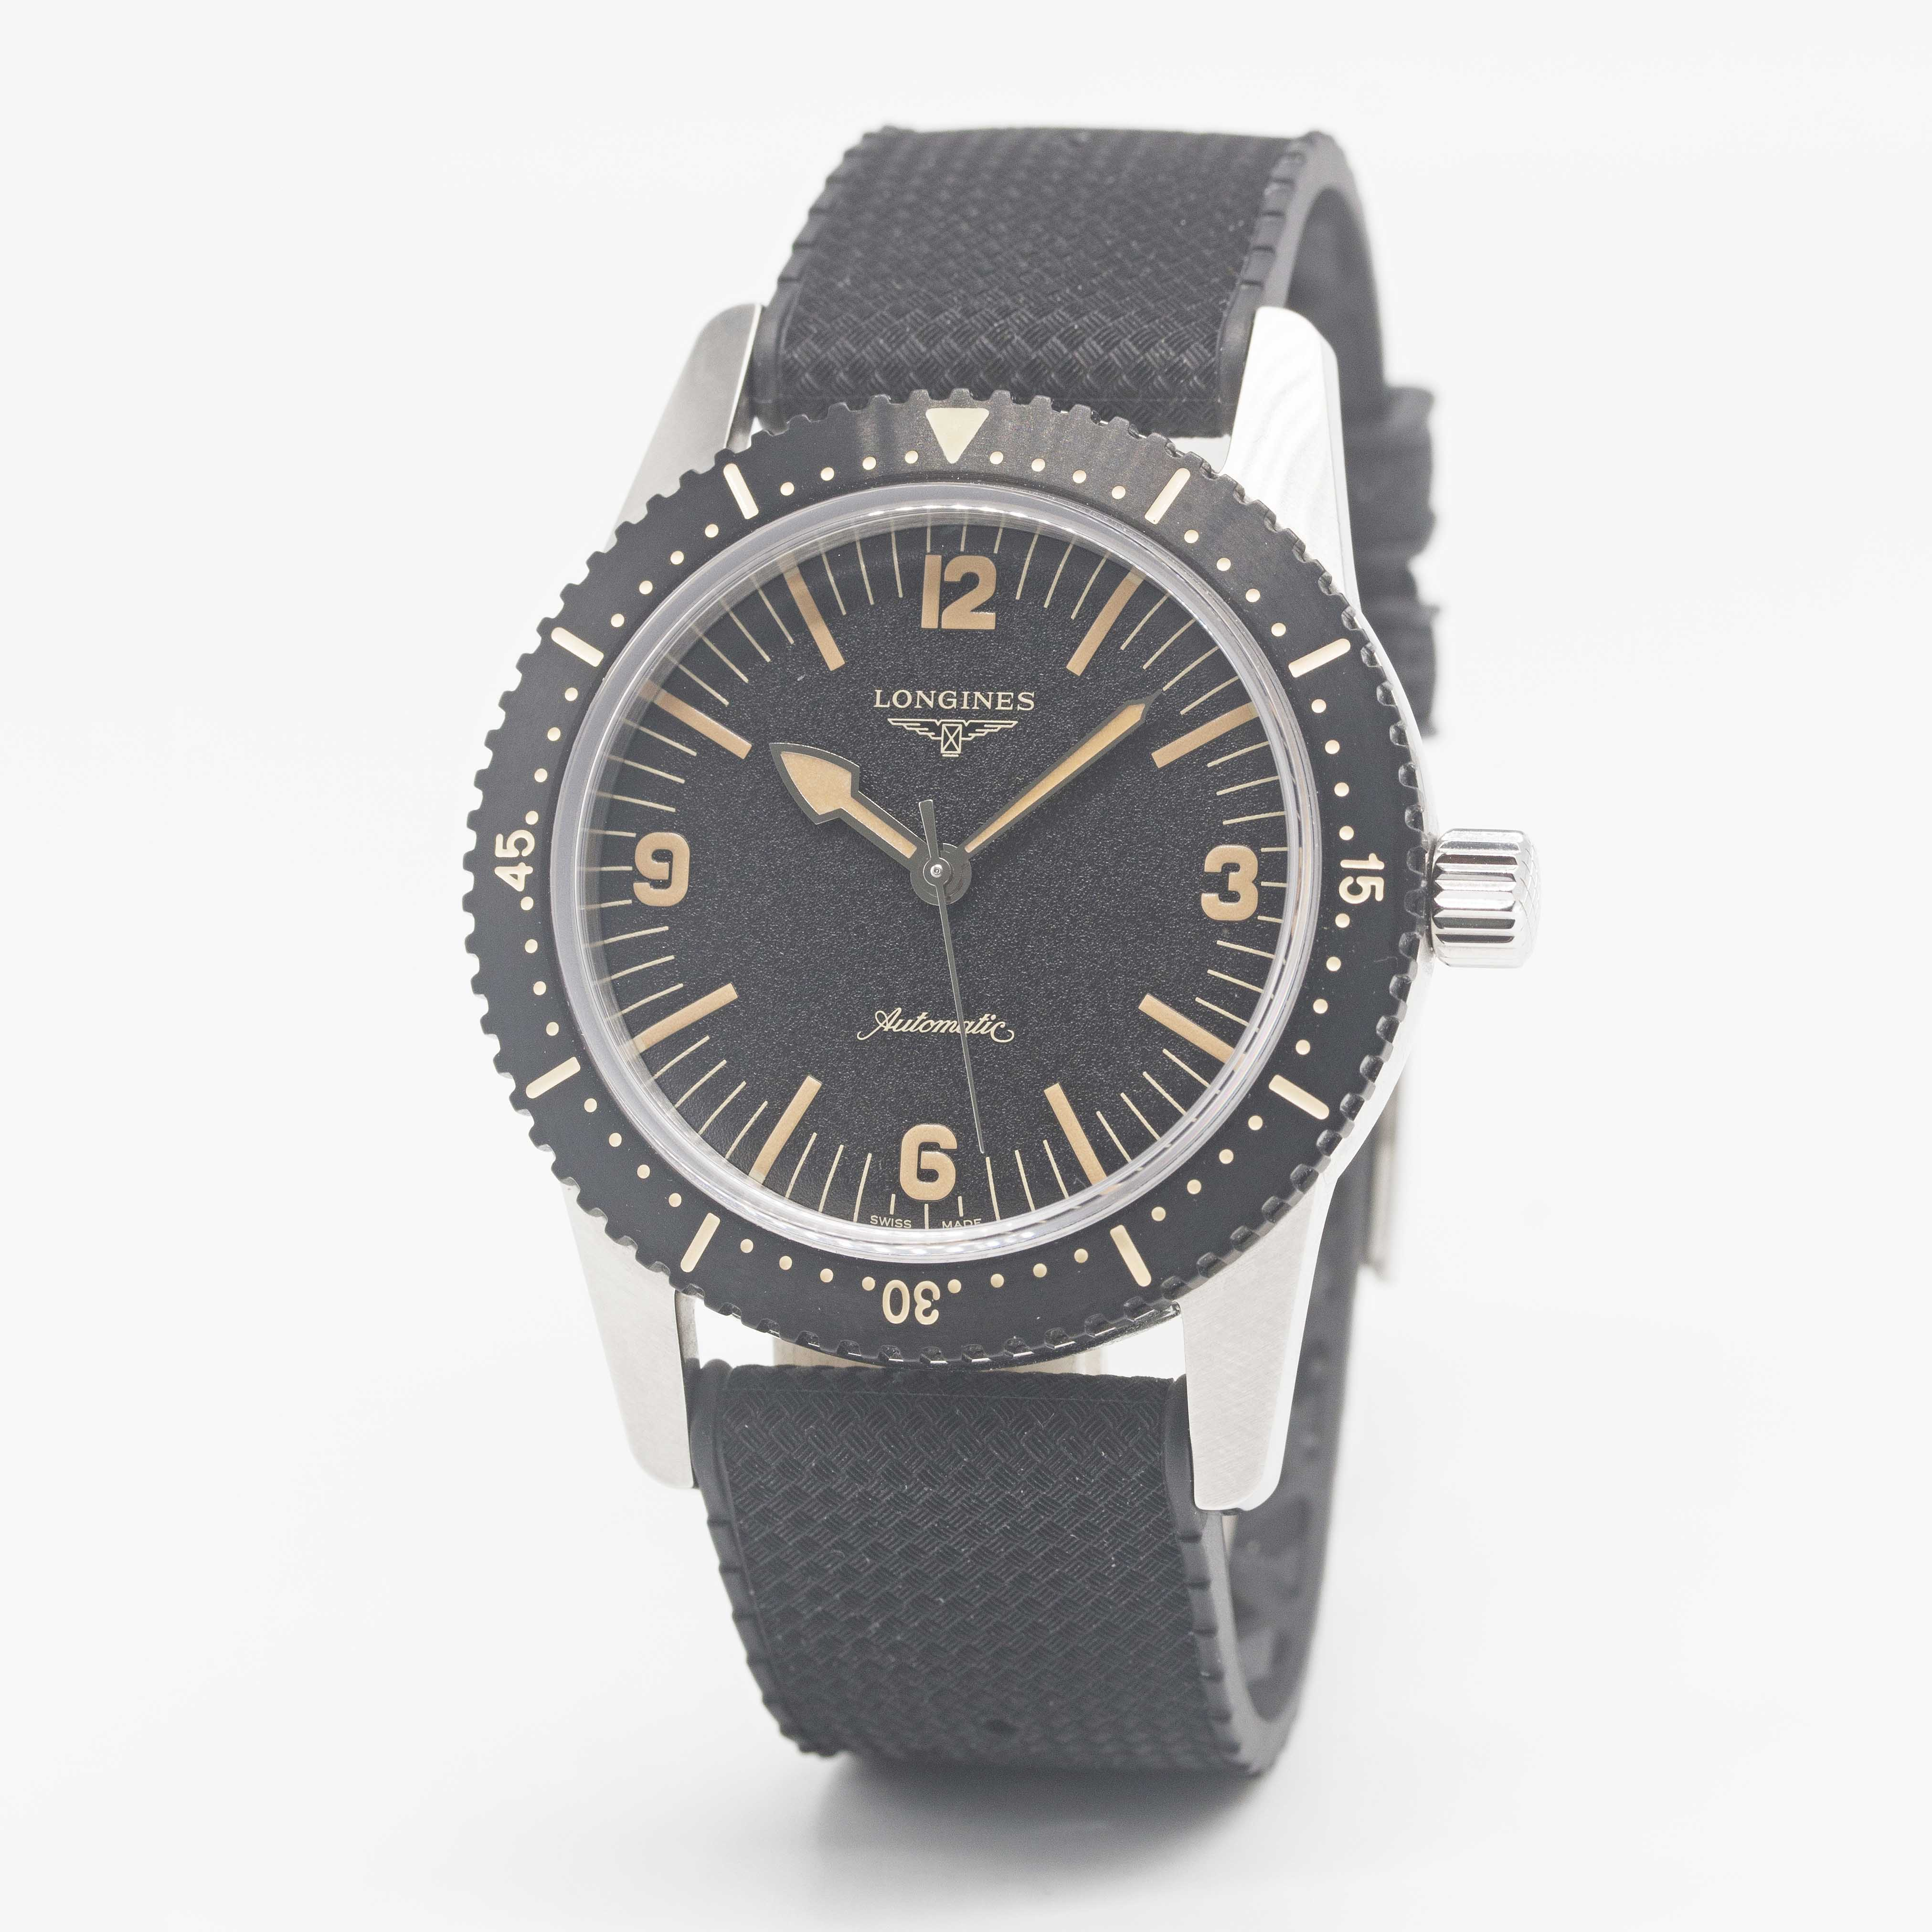 Lot 3 - A GENTLEMAN'S STAINLESS STEEL LONGINES HERITAGE SKIN DIVER WRIST WATCH DATED 2020, REF. L28224569